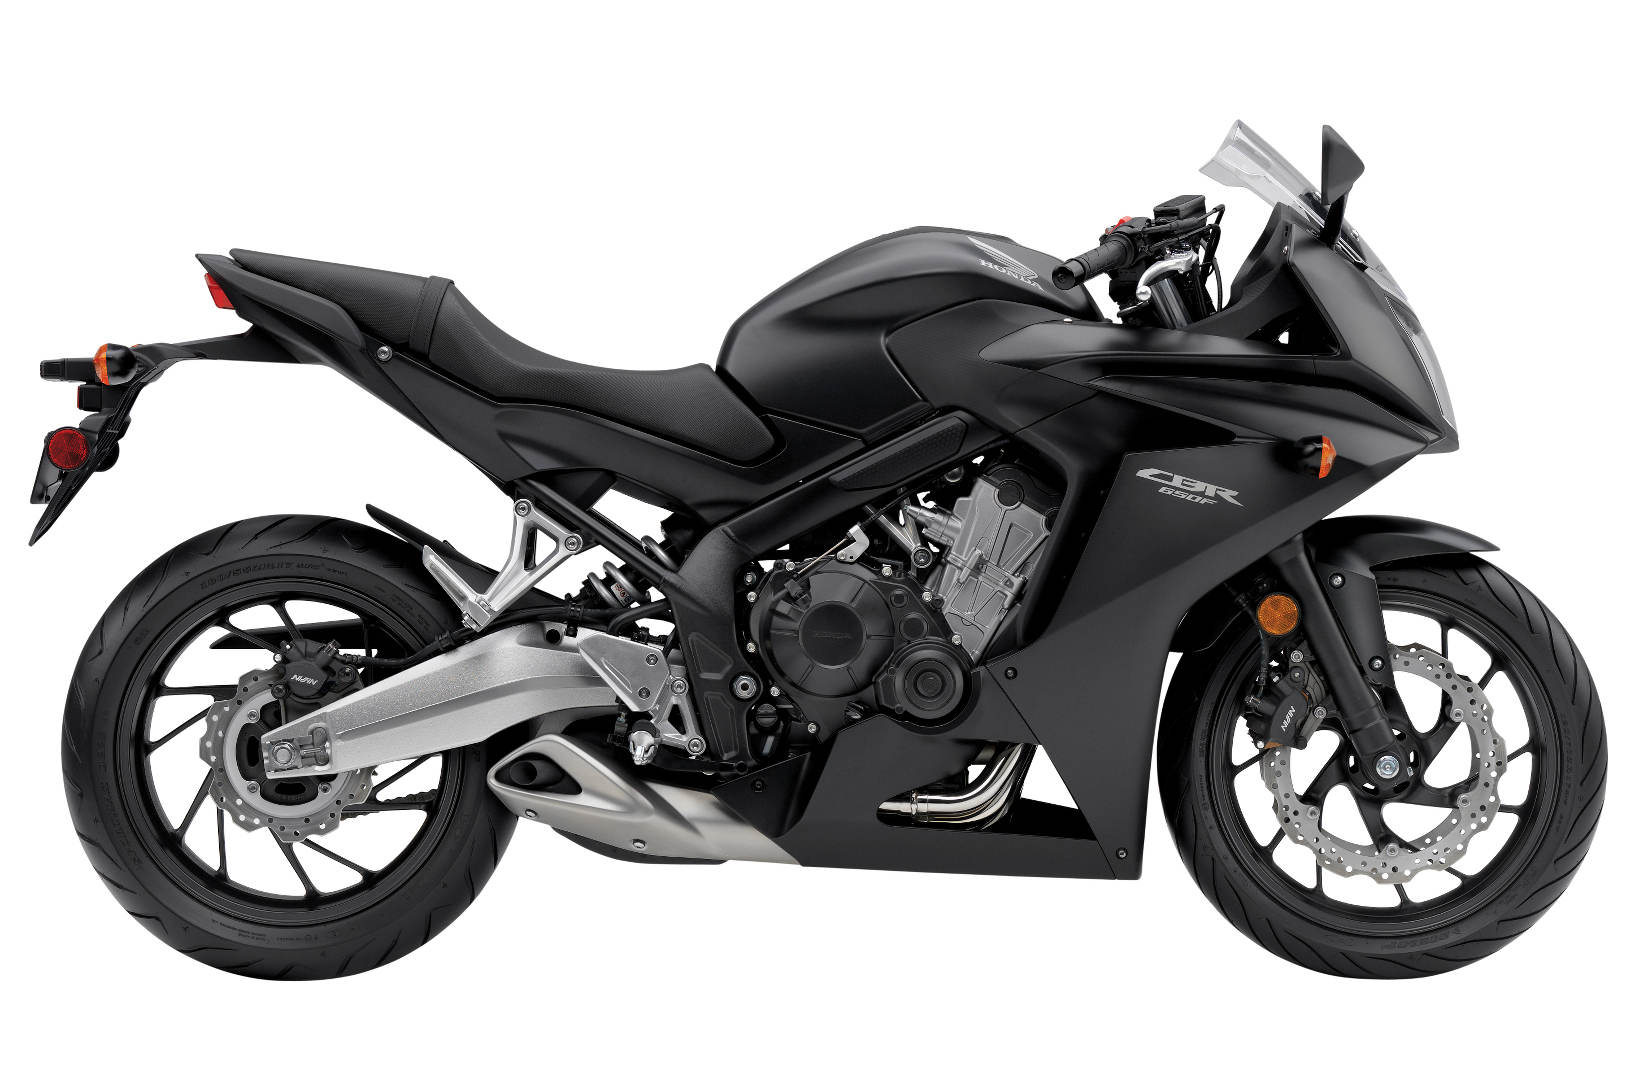 Honda Introduces 2014 CBR650F and Interceptor 800 for U.S ...